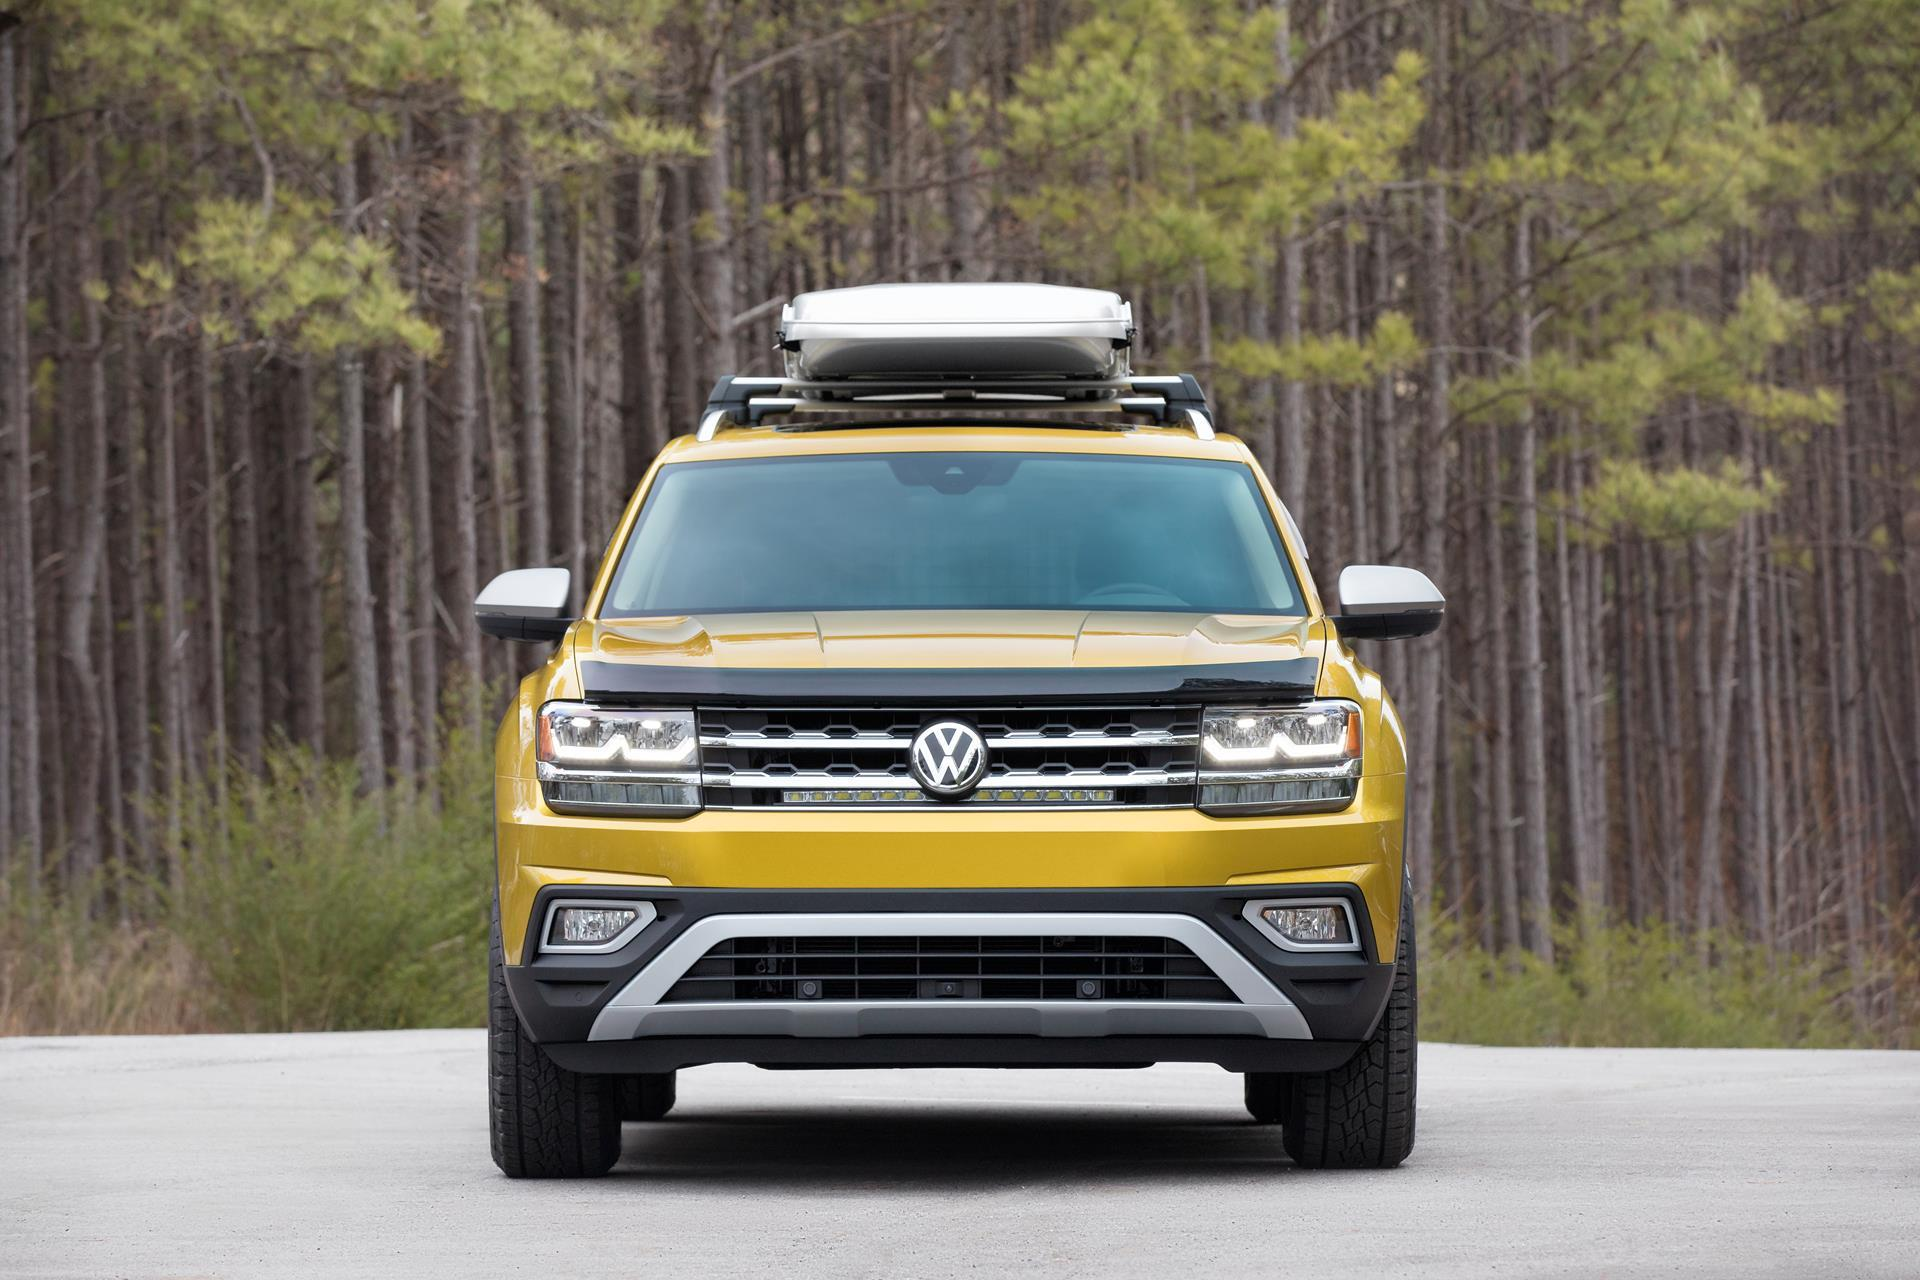 volkswagen atlas weekend edition technical specifications  data engine dimensions